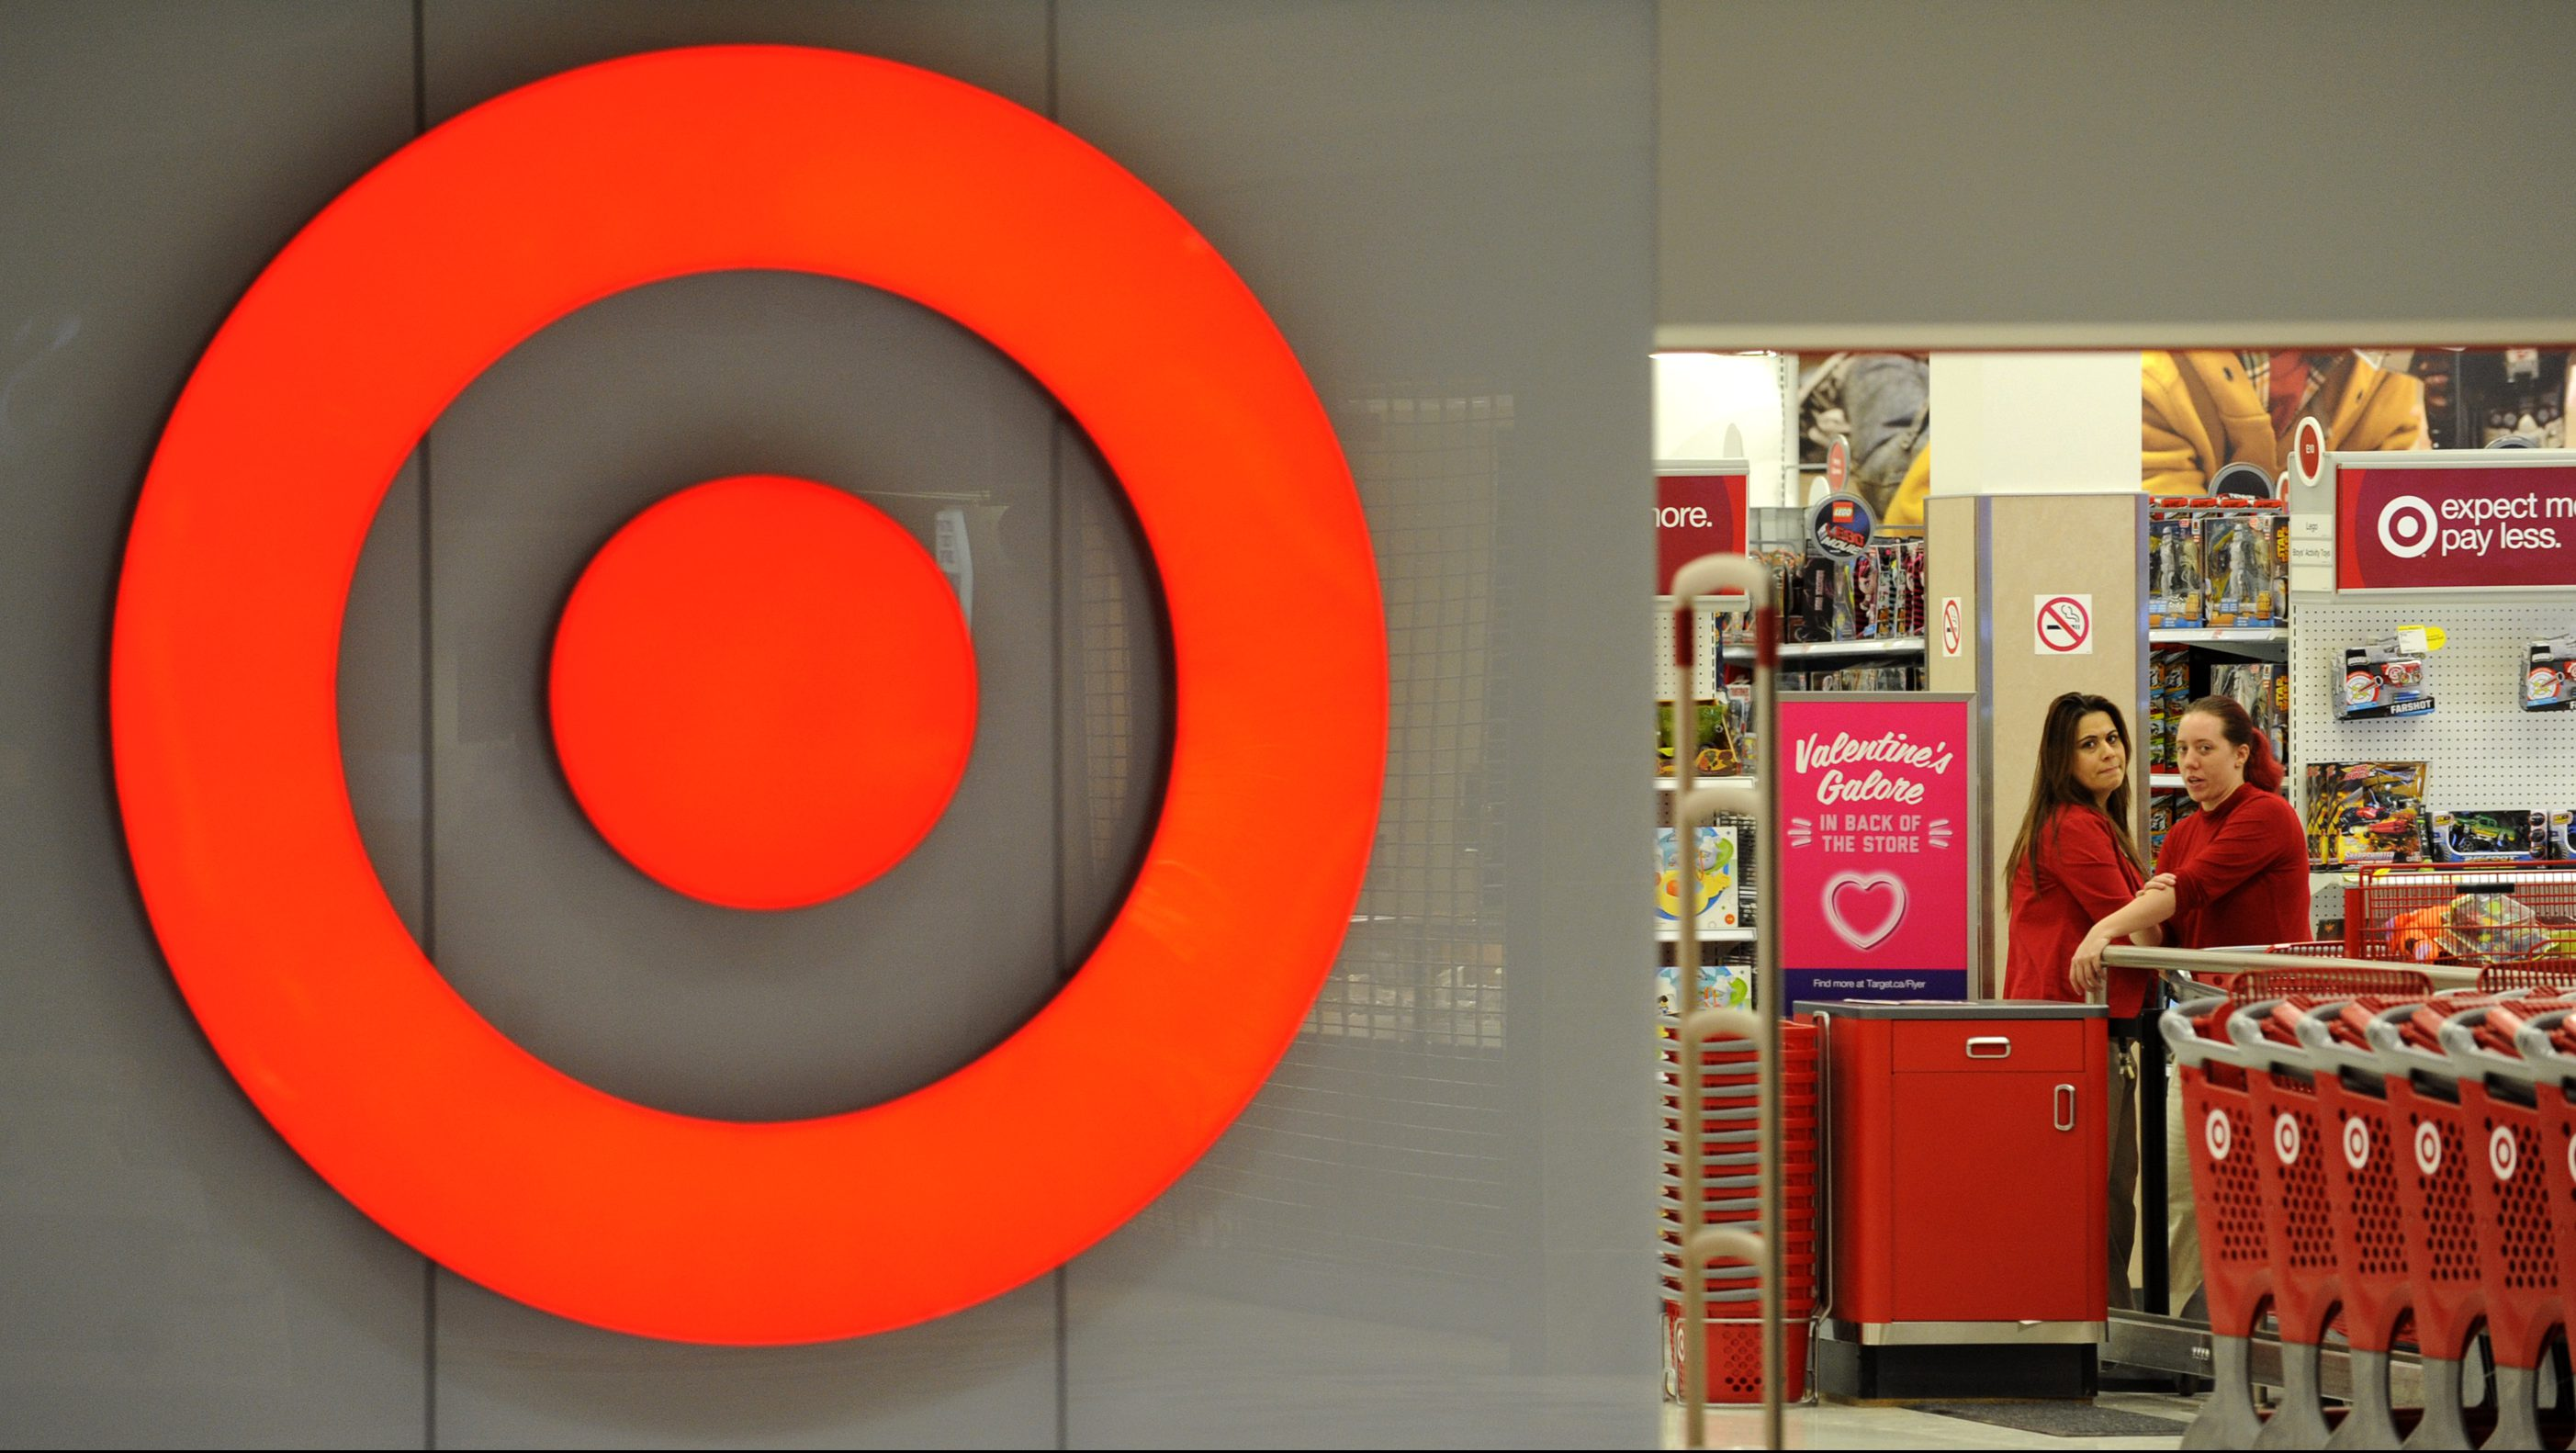 Employees work at a Target store at St. Albert, Alberta, January 15, 2015.